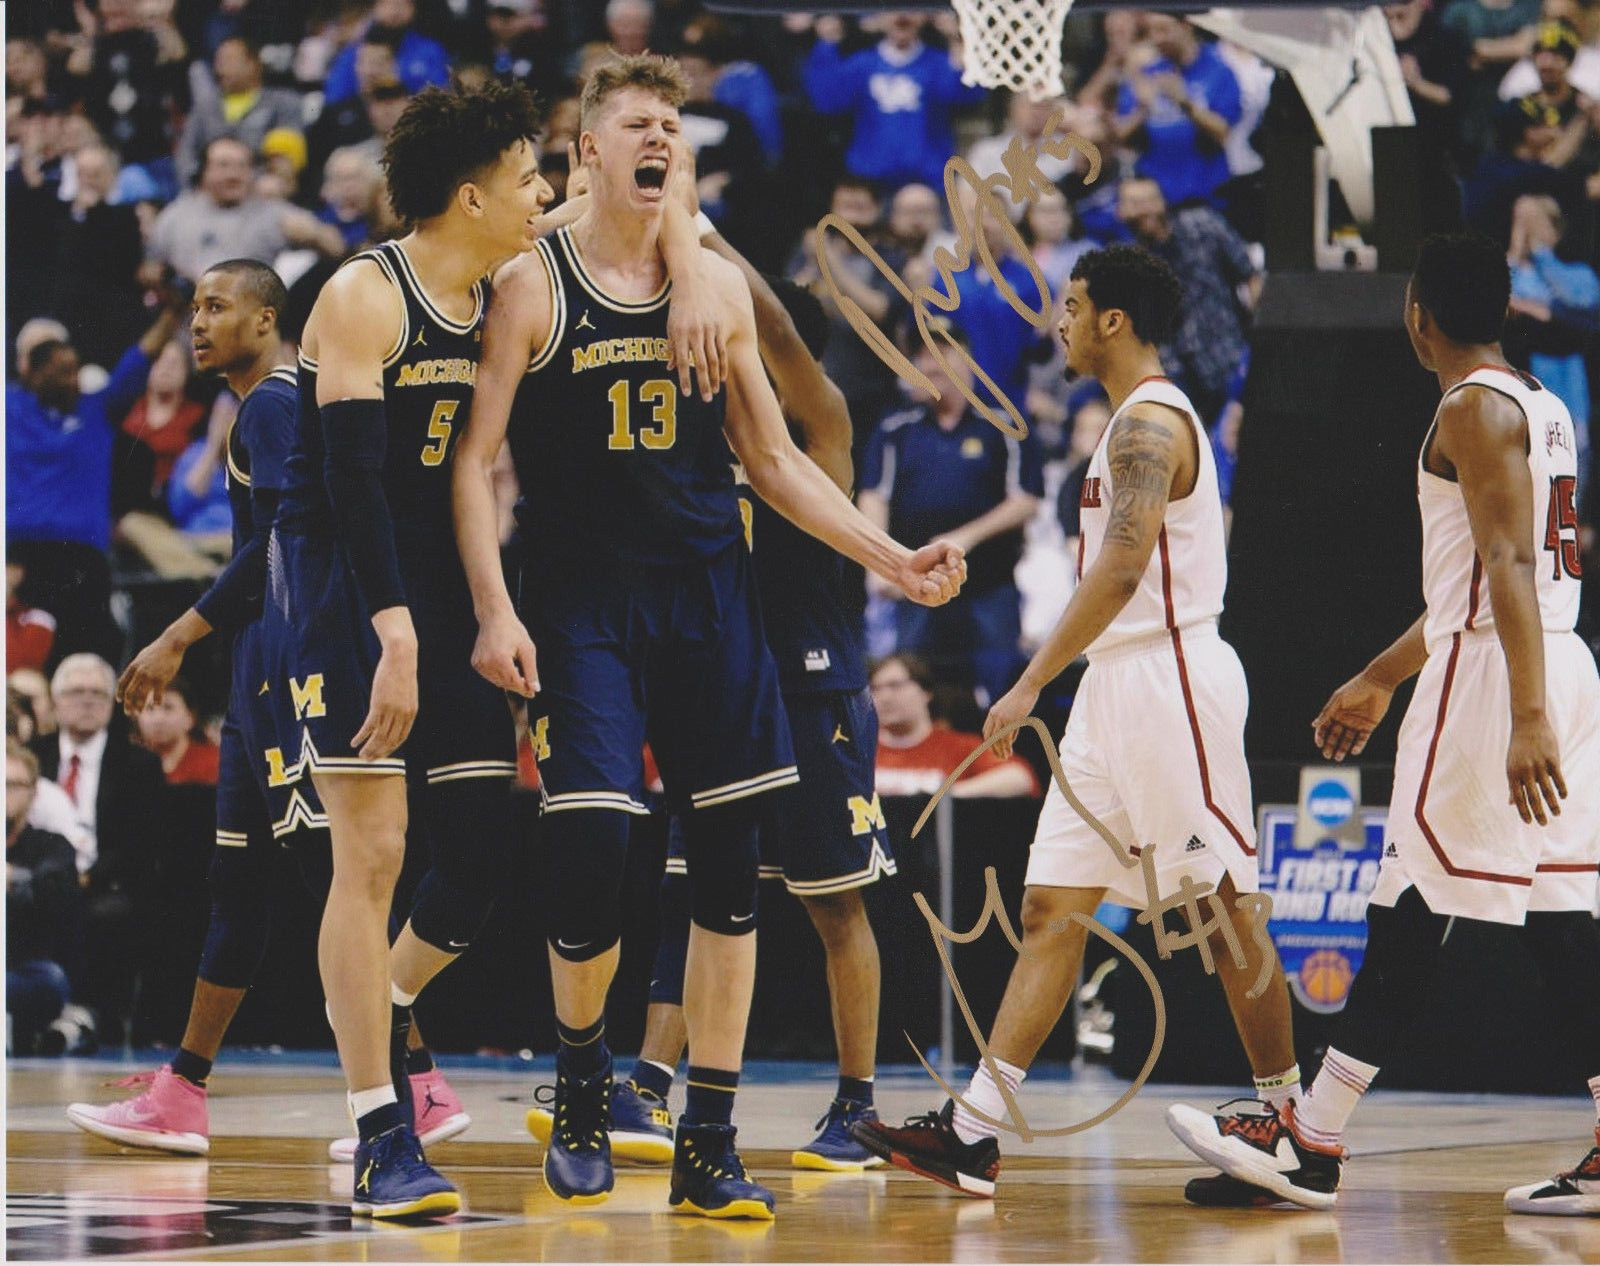 e0161be60fb5 D.J. WILSON + MORITZ WAGNER Michigan Wolverines Basketball Signed 8X10  Photo